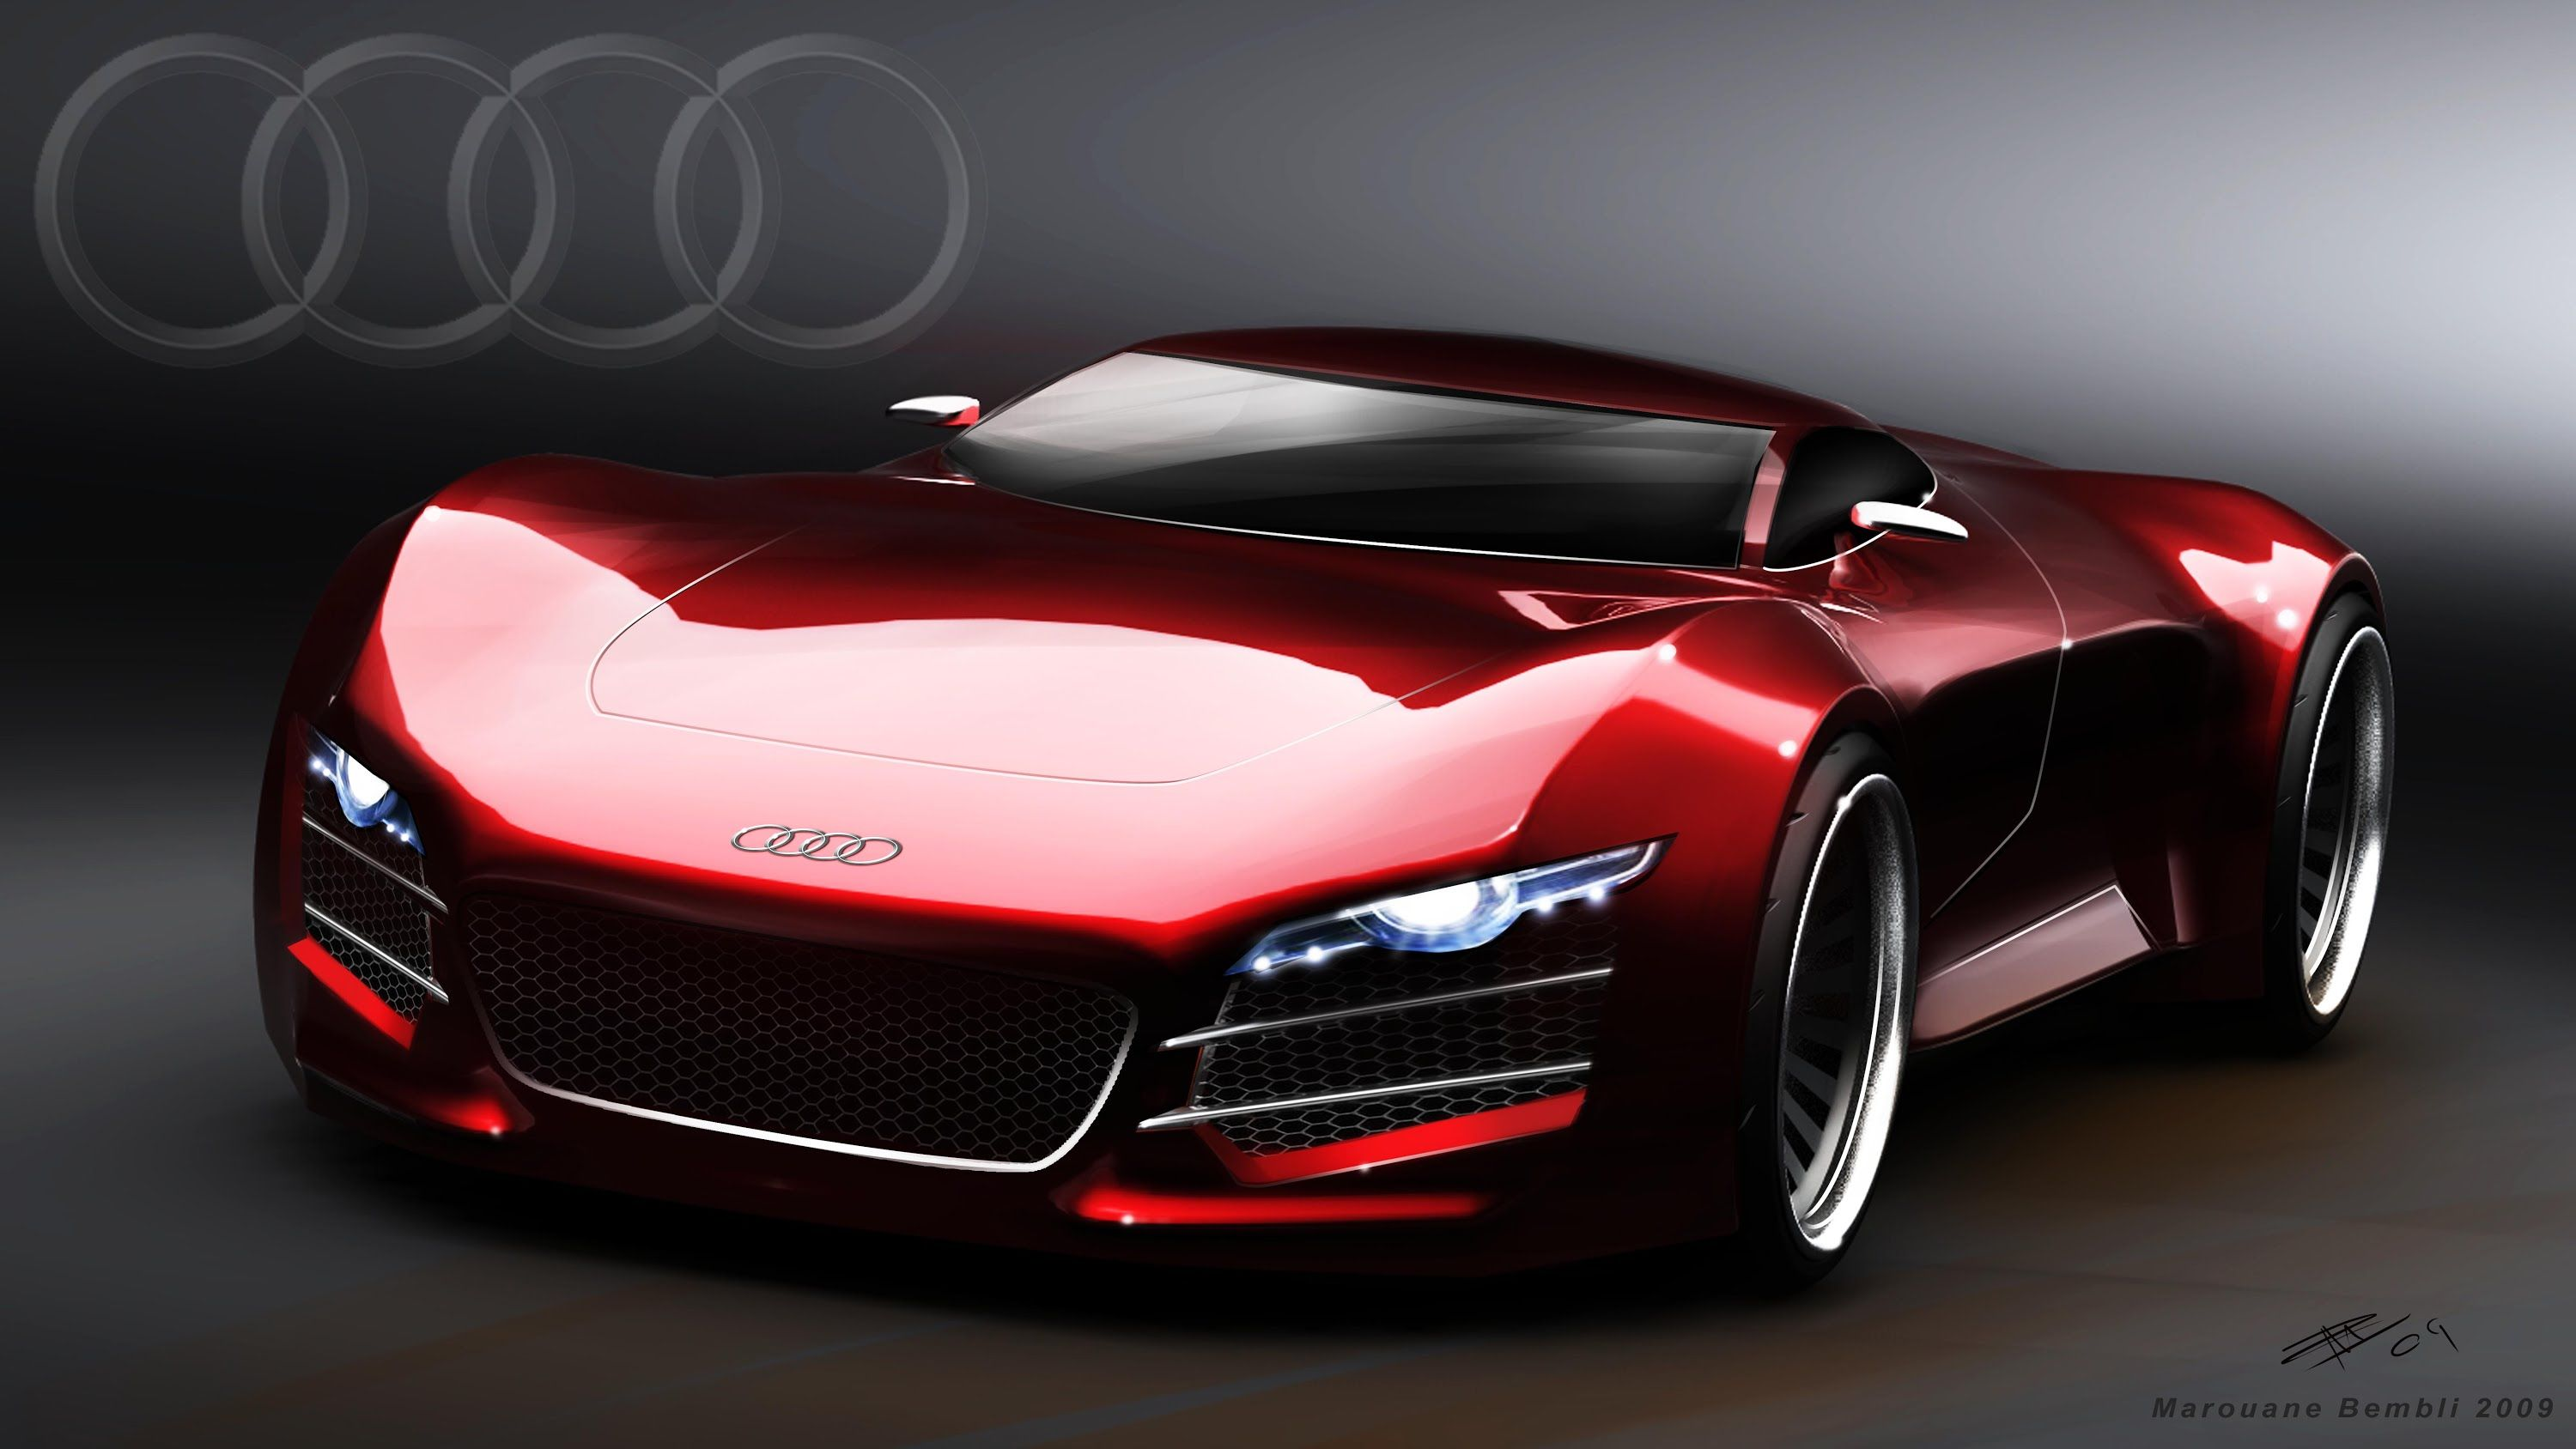 Perfect Typical Job Will Not Get You This New Audi Sports Car Or Nothing Like It.  If You Dream Big Joinshay.